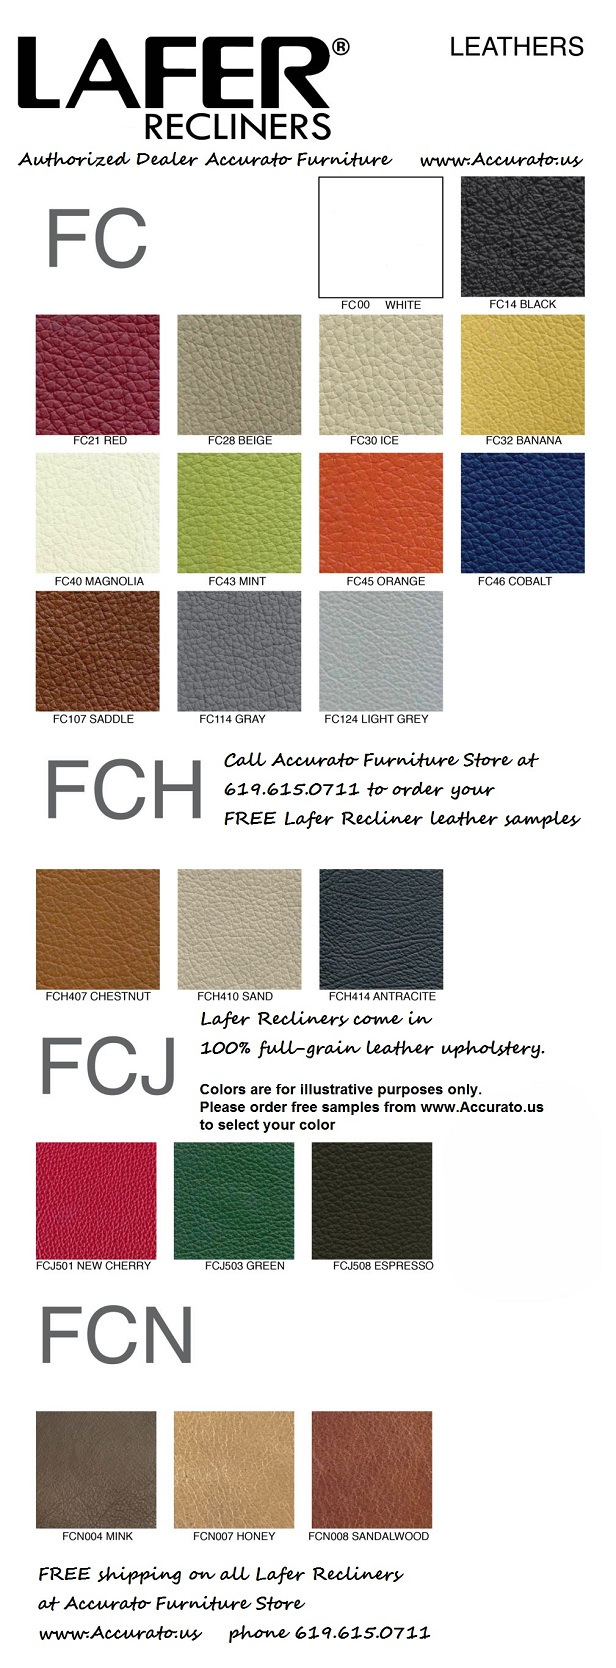 Lafer of Brazil - Lafer Recliner Leather Sample Colors